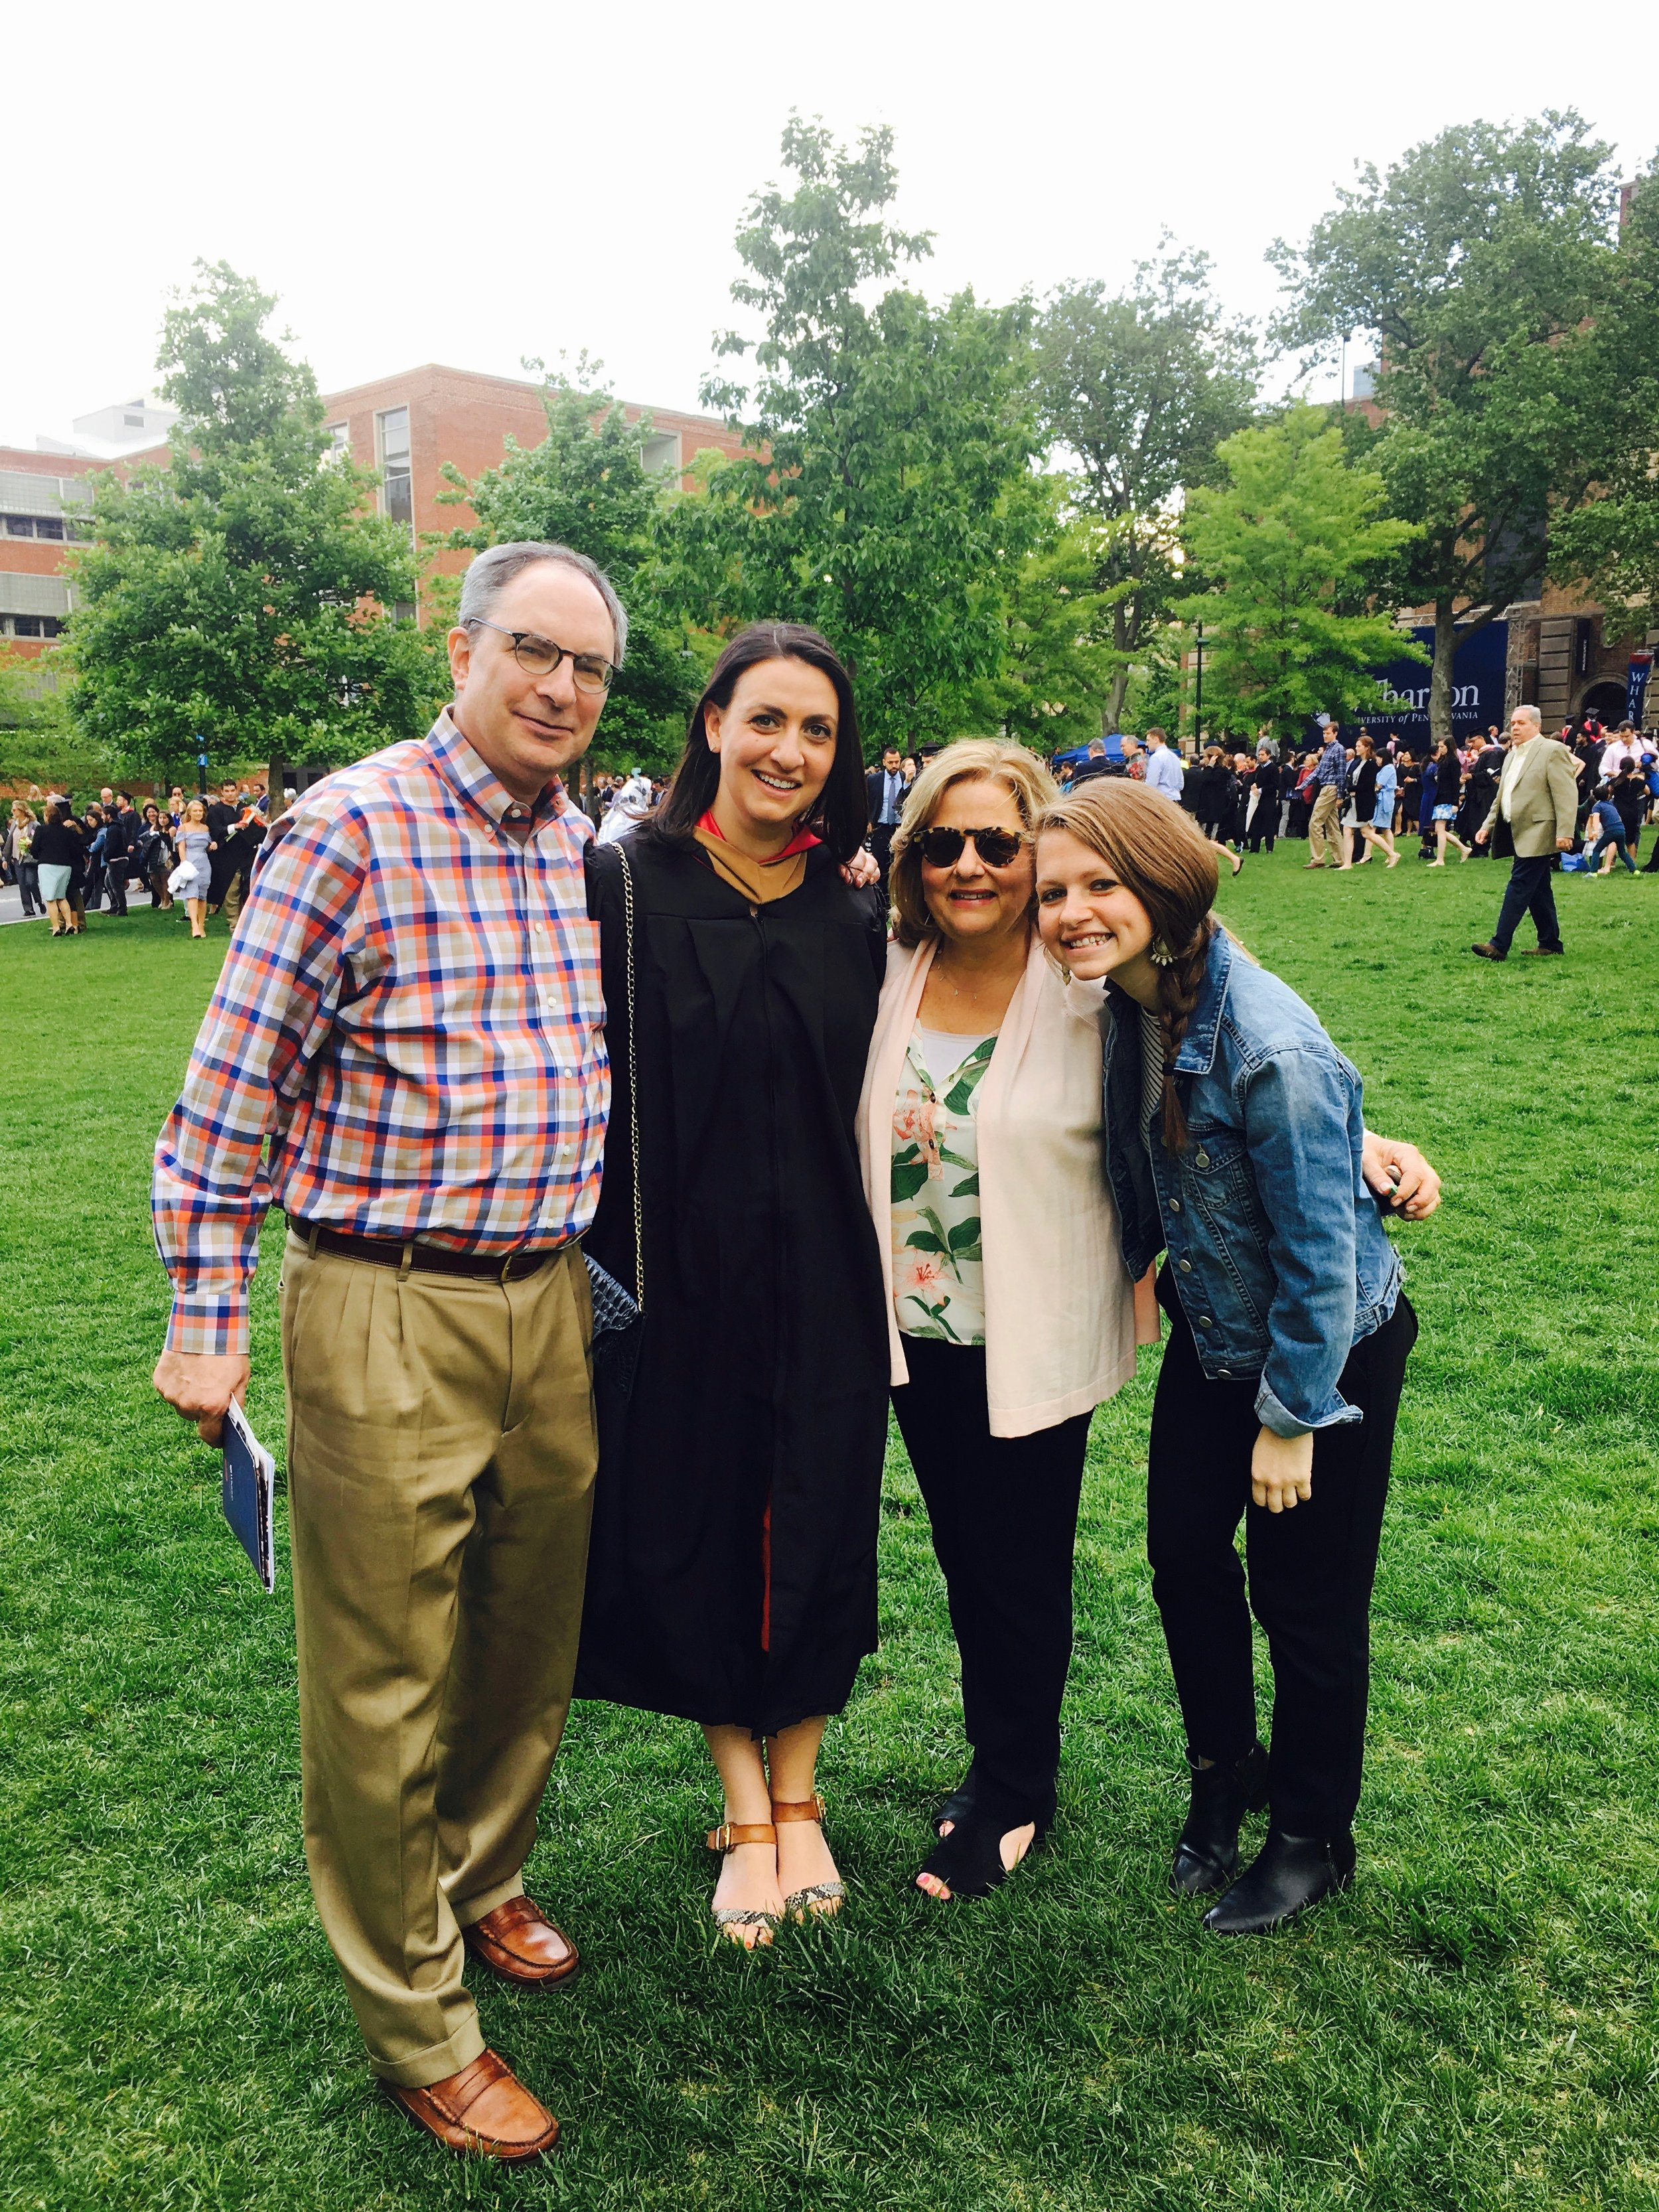 My family at my sister's graduation from business school!